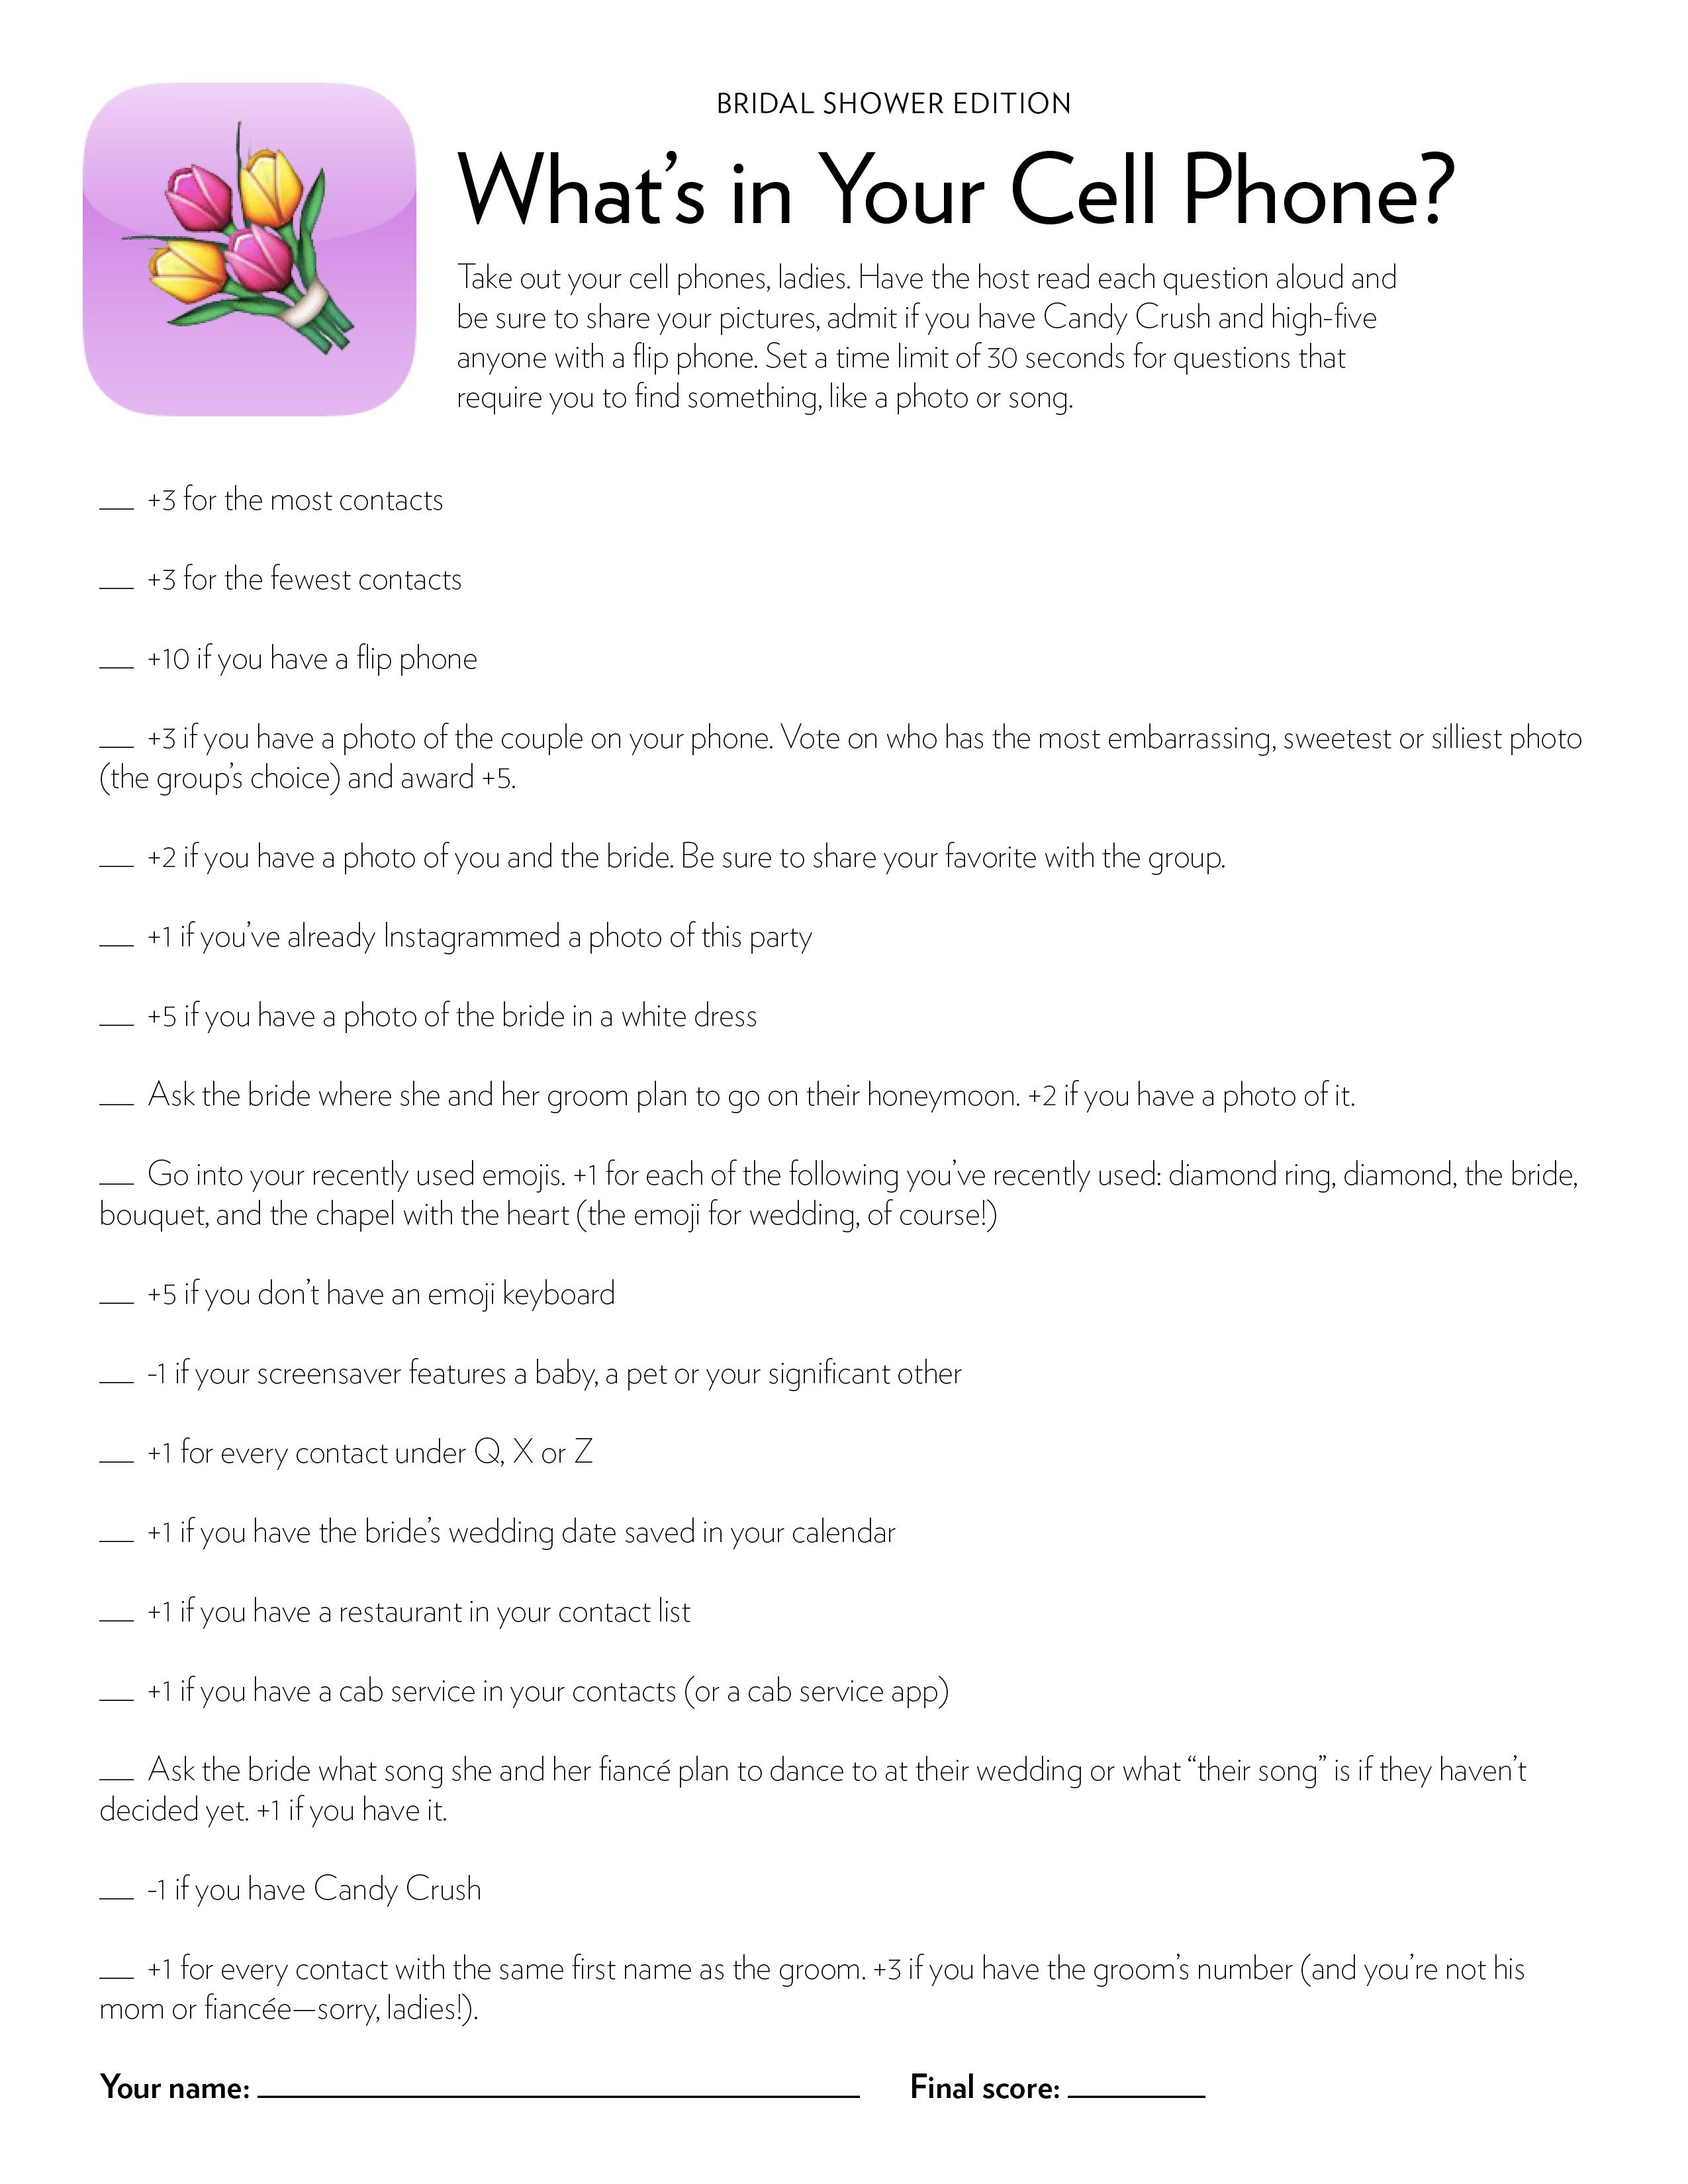 Bridal Shower & Bachelorette Game: What's In Your Cell Phone - What's In Your Cell Phone Game Free Printable